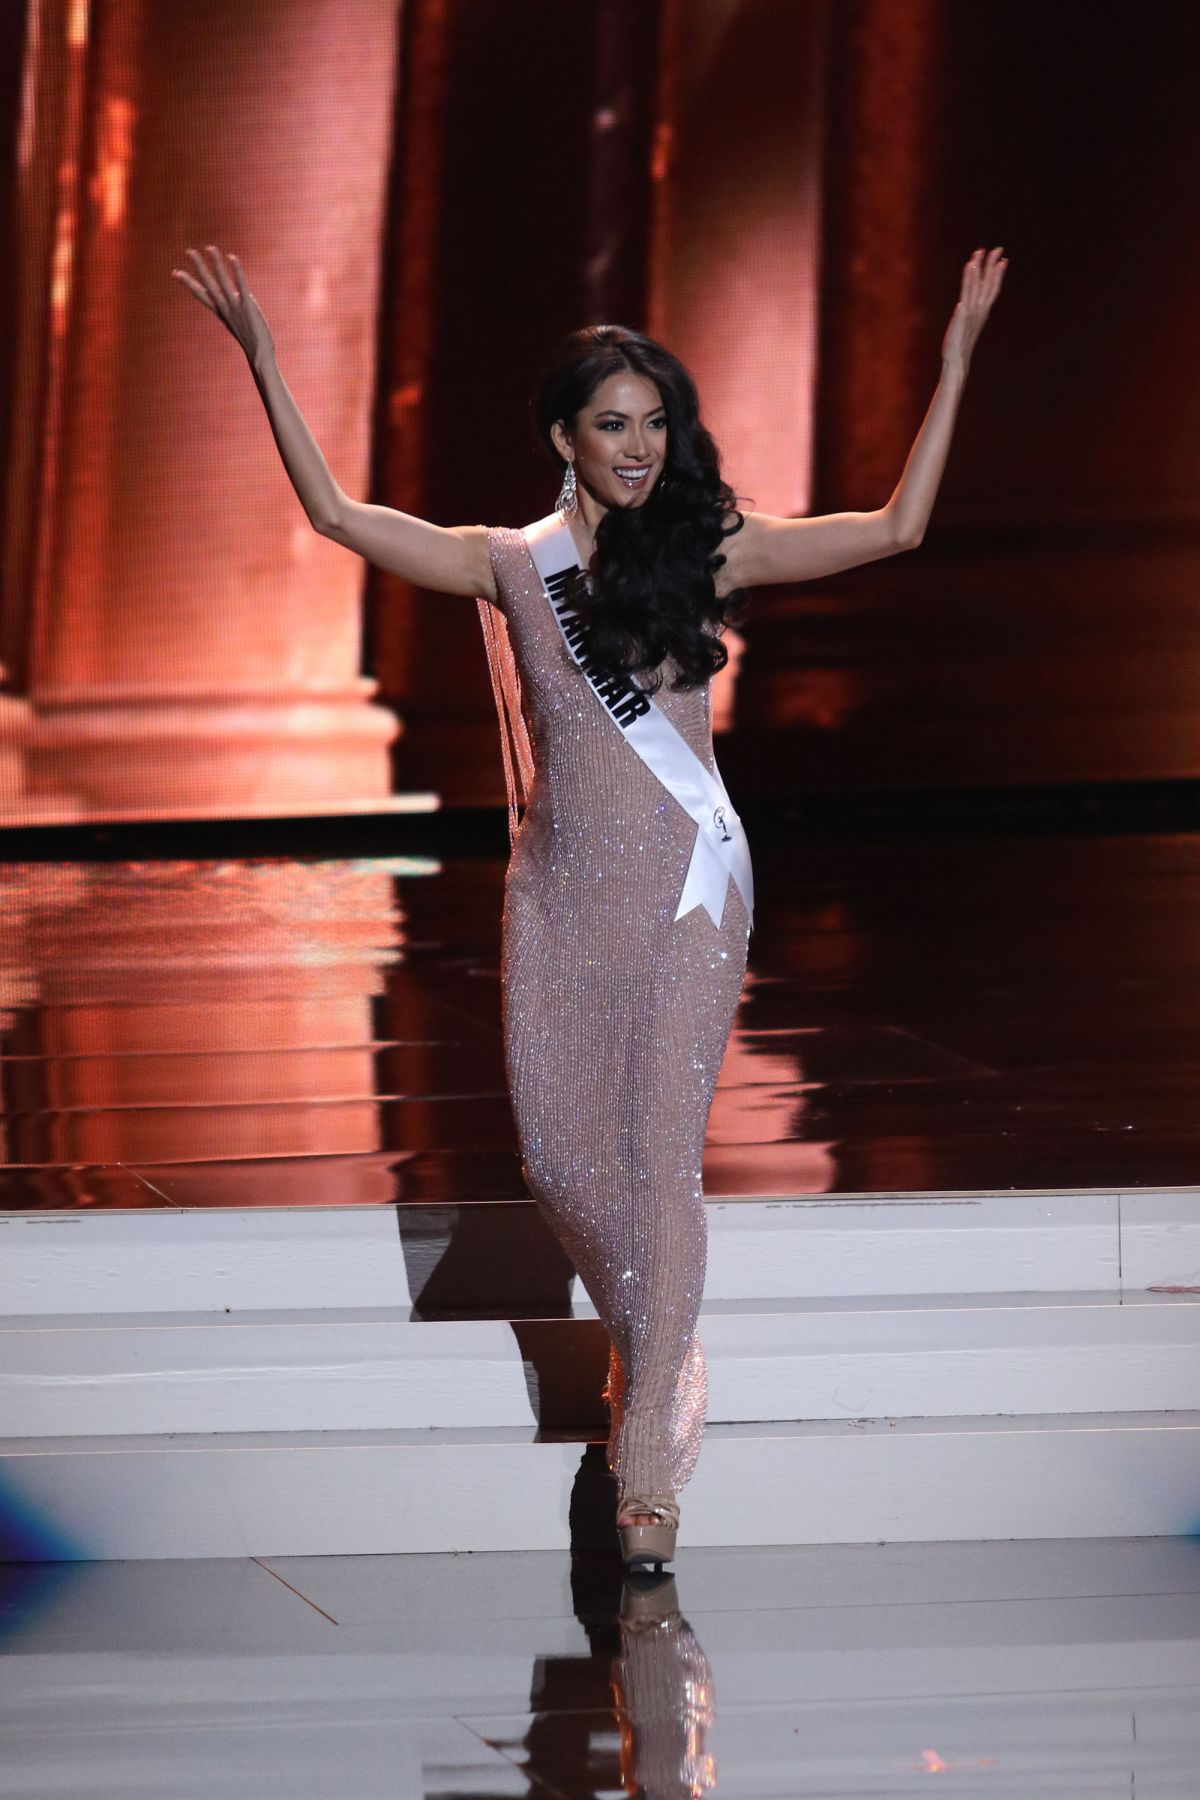 MAY THAW - Miss Universe 2015 Preliminary Round 12/16/2015